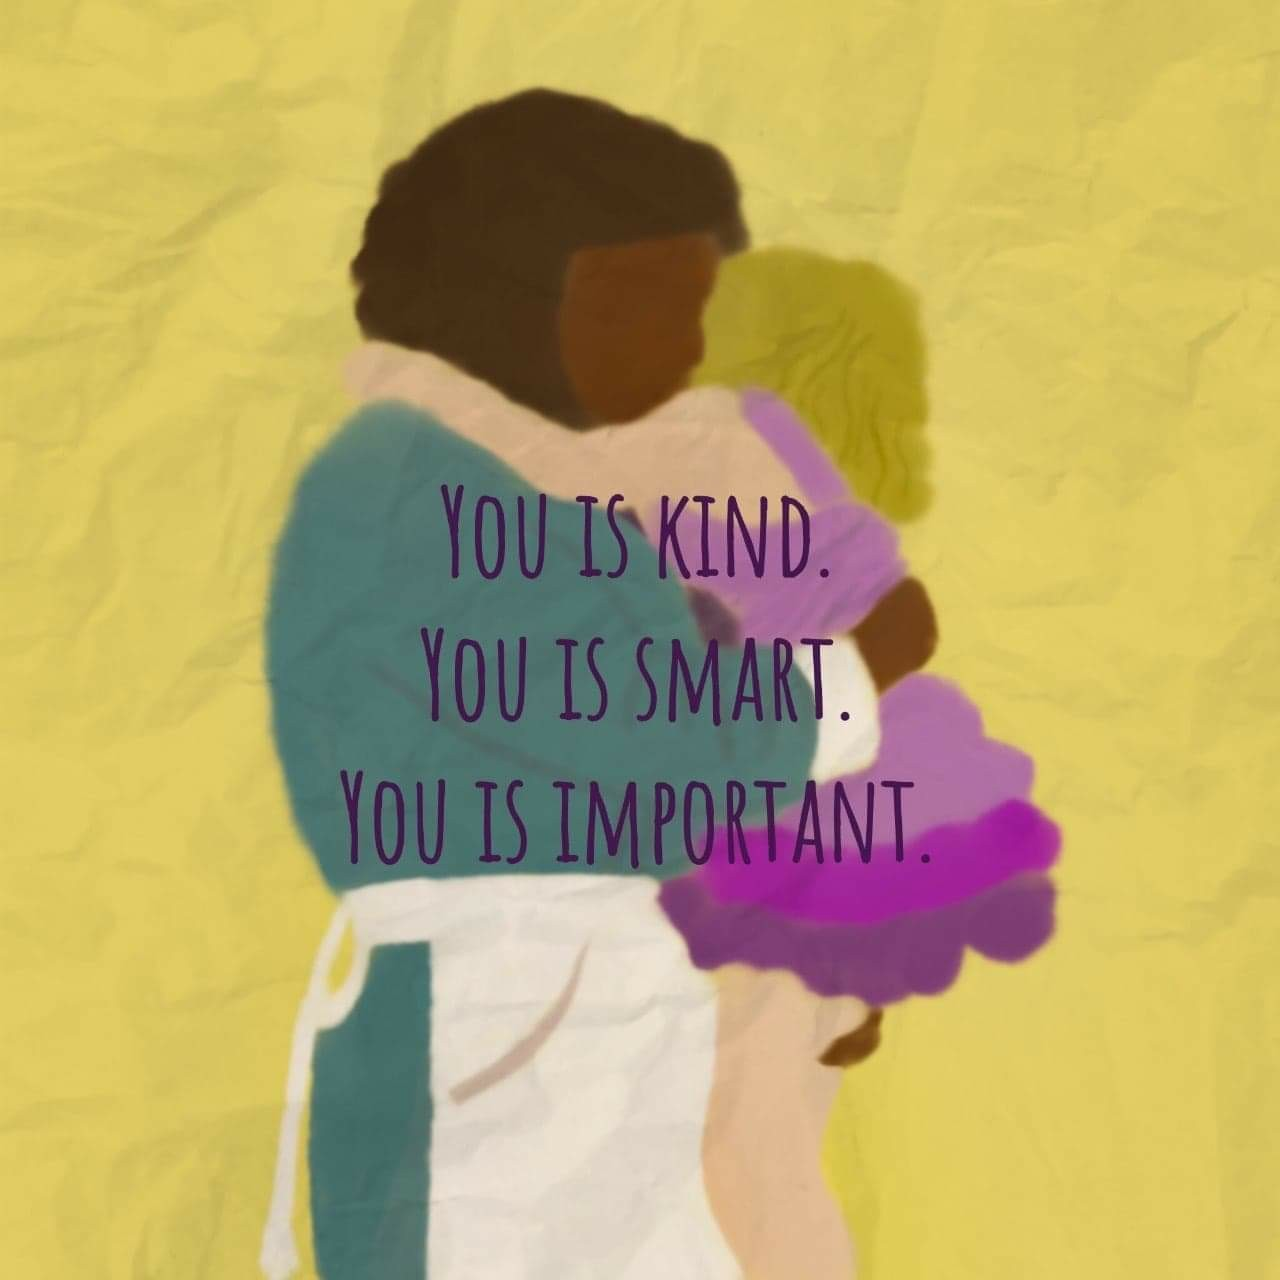 The Help You is kind. You is smart. You is important.